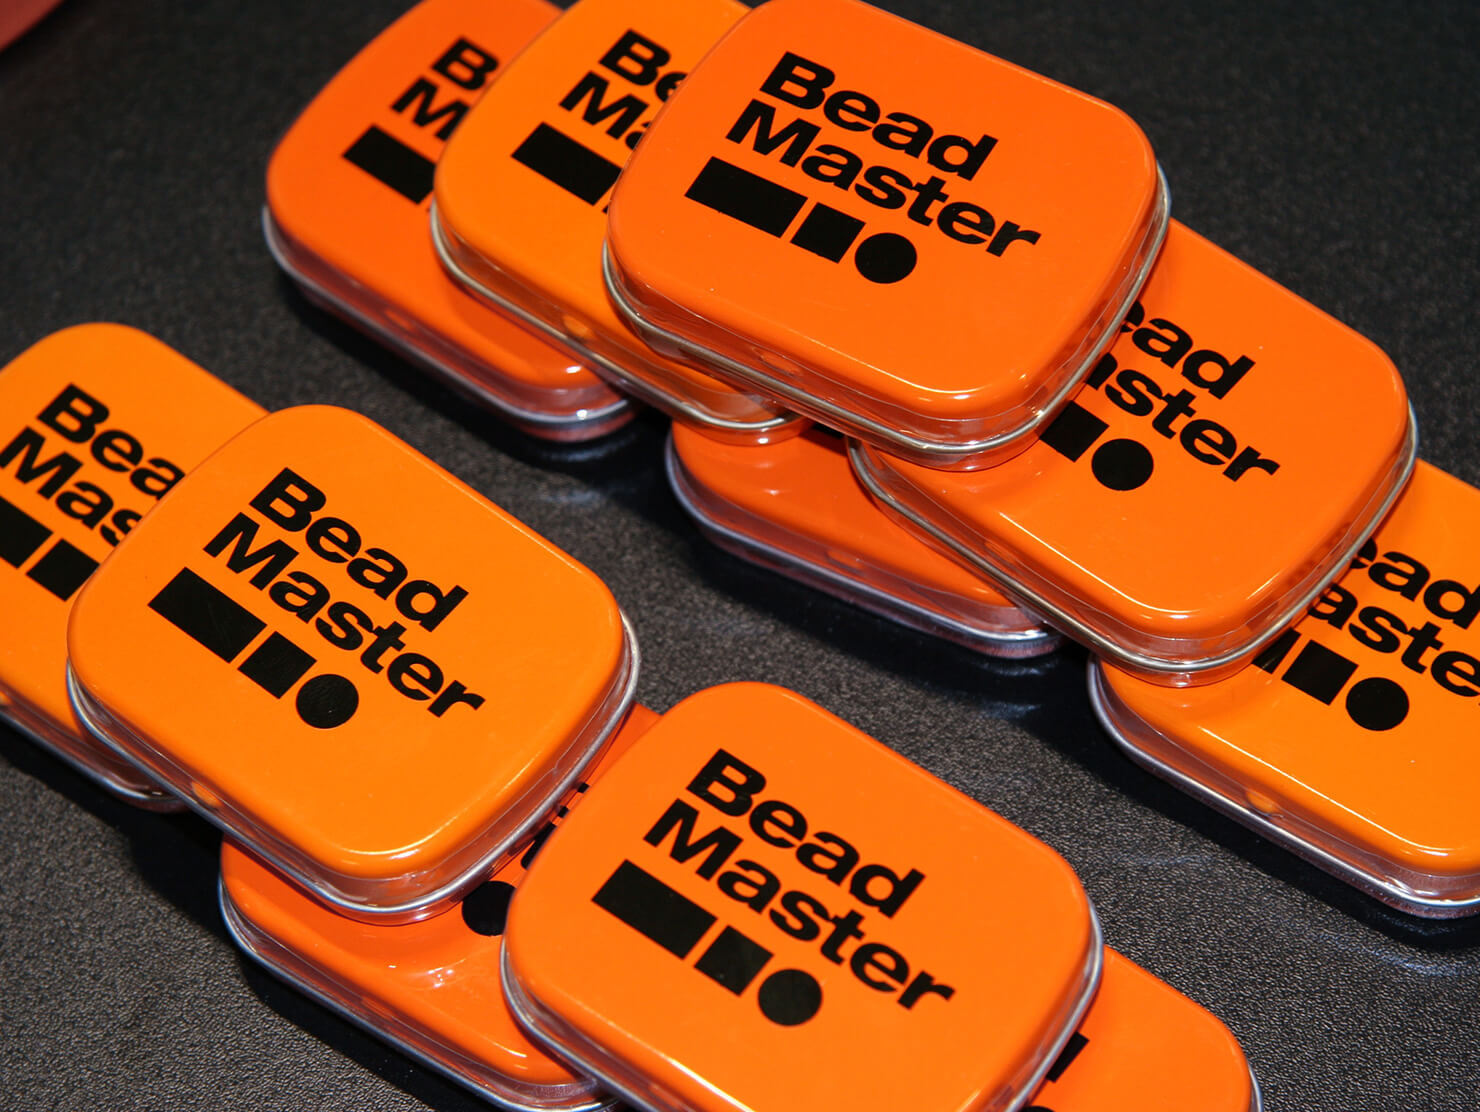 BeadMaster London Build 2019 branded mints.